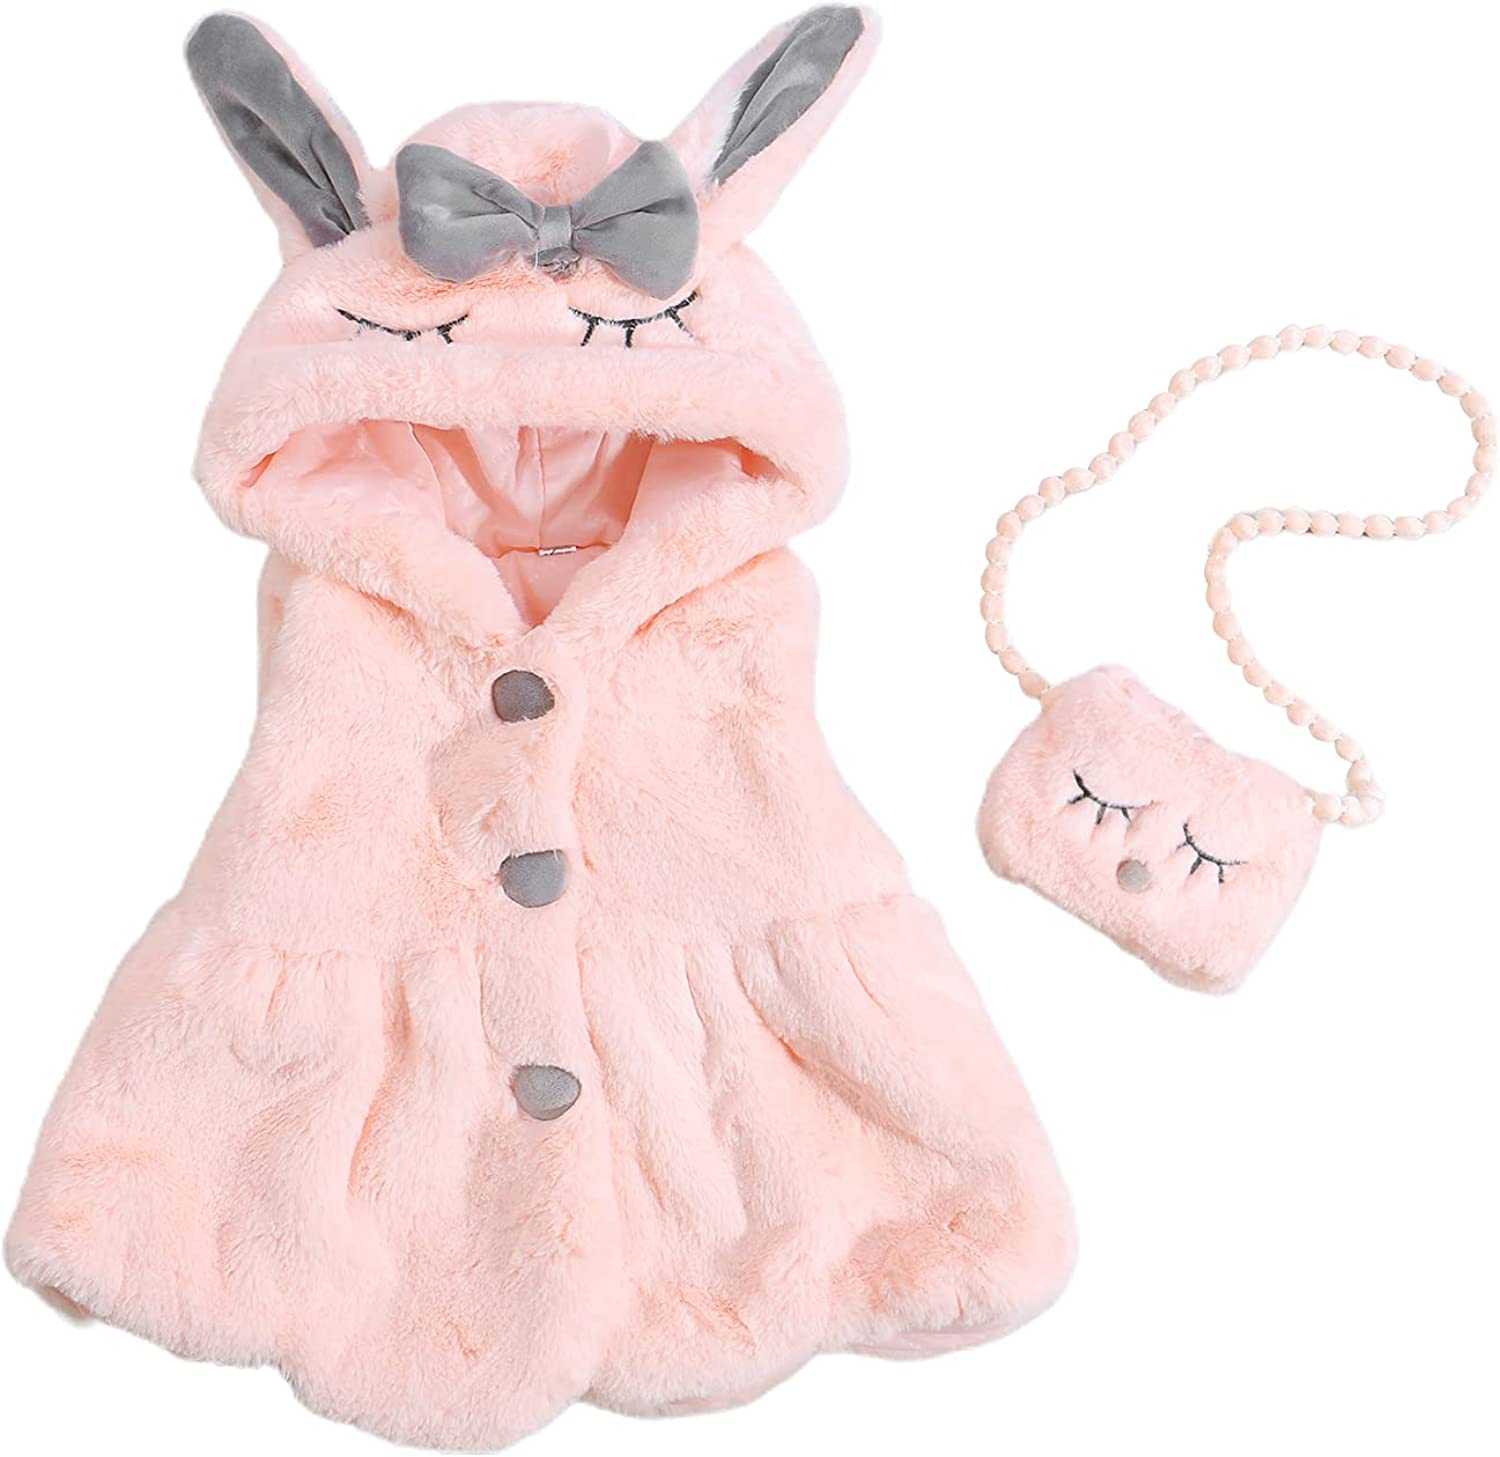 Toddler Baby Girl Winter Outfits Portland Mall Brand new Fleece Coat Cute Faux Bunny Fur